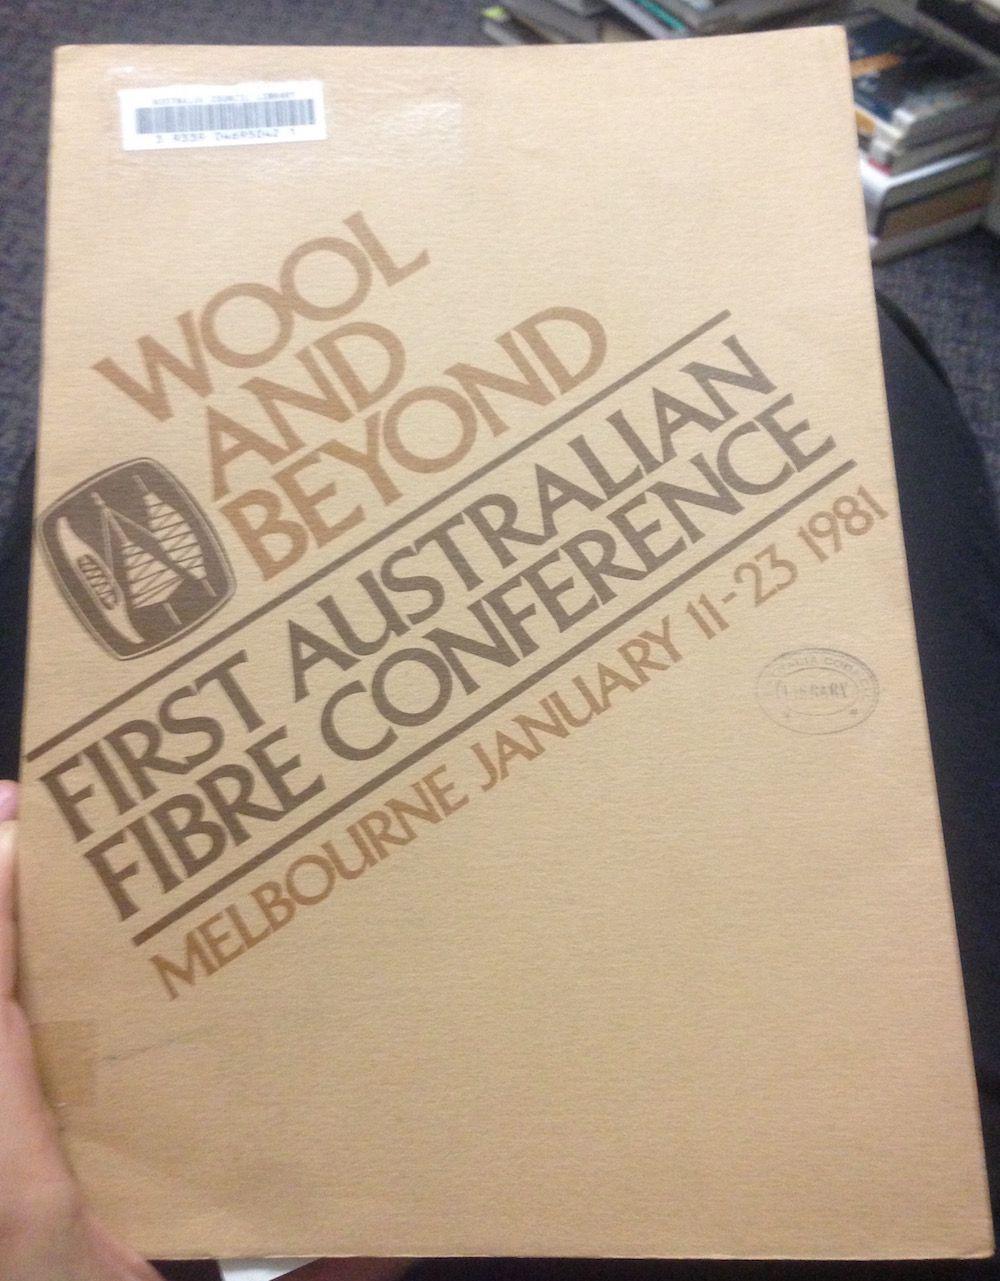 Photograph of the cover of Wool and Beyond: First Australian Fibre Conference: Melbourne January 11-23 1981 (1982)